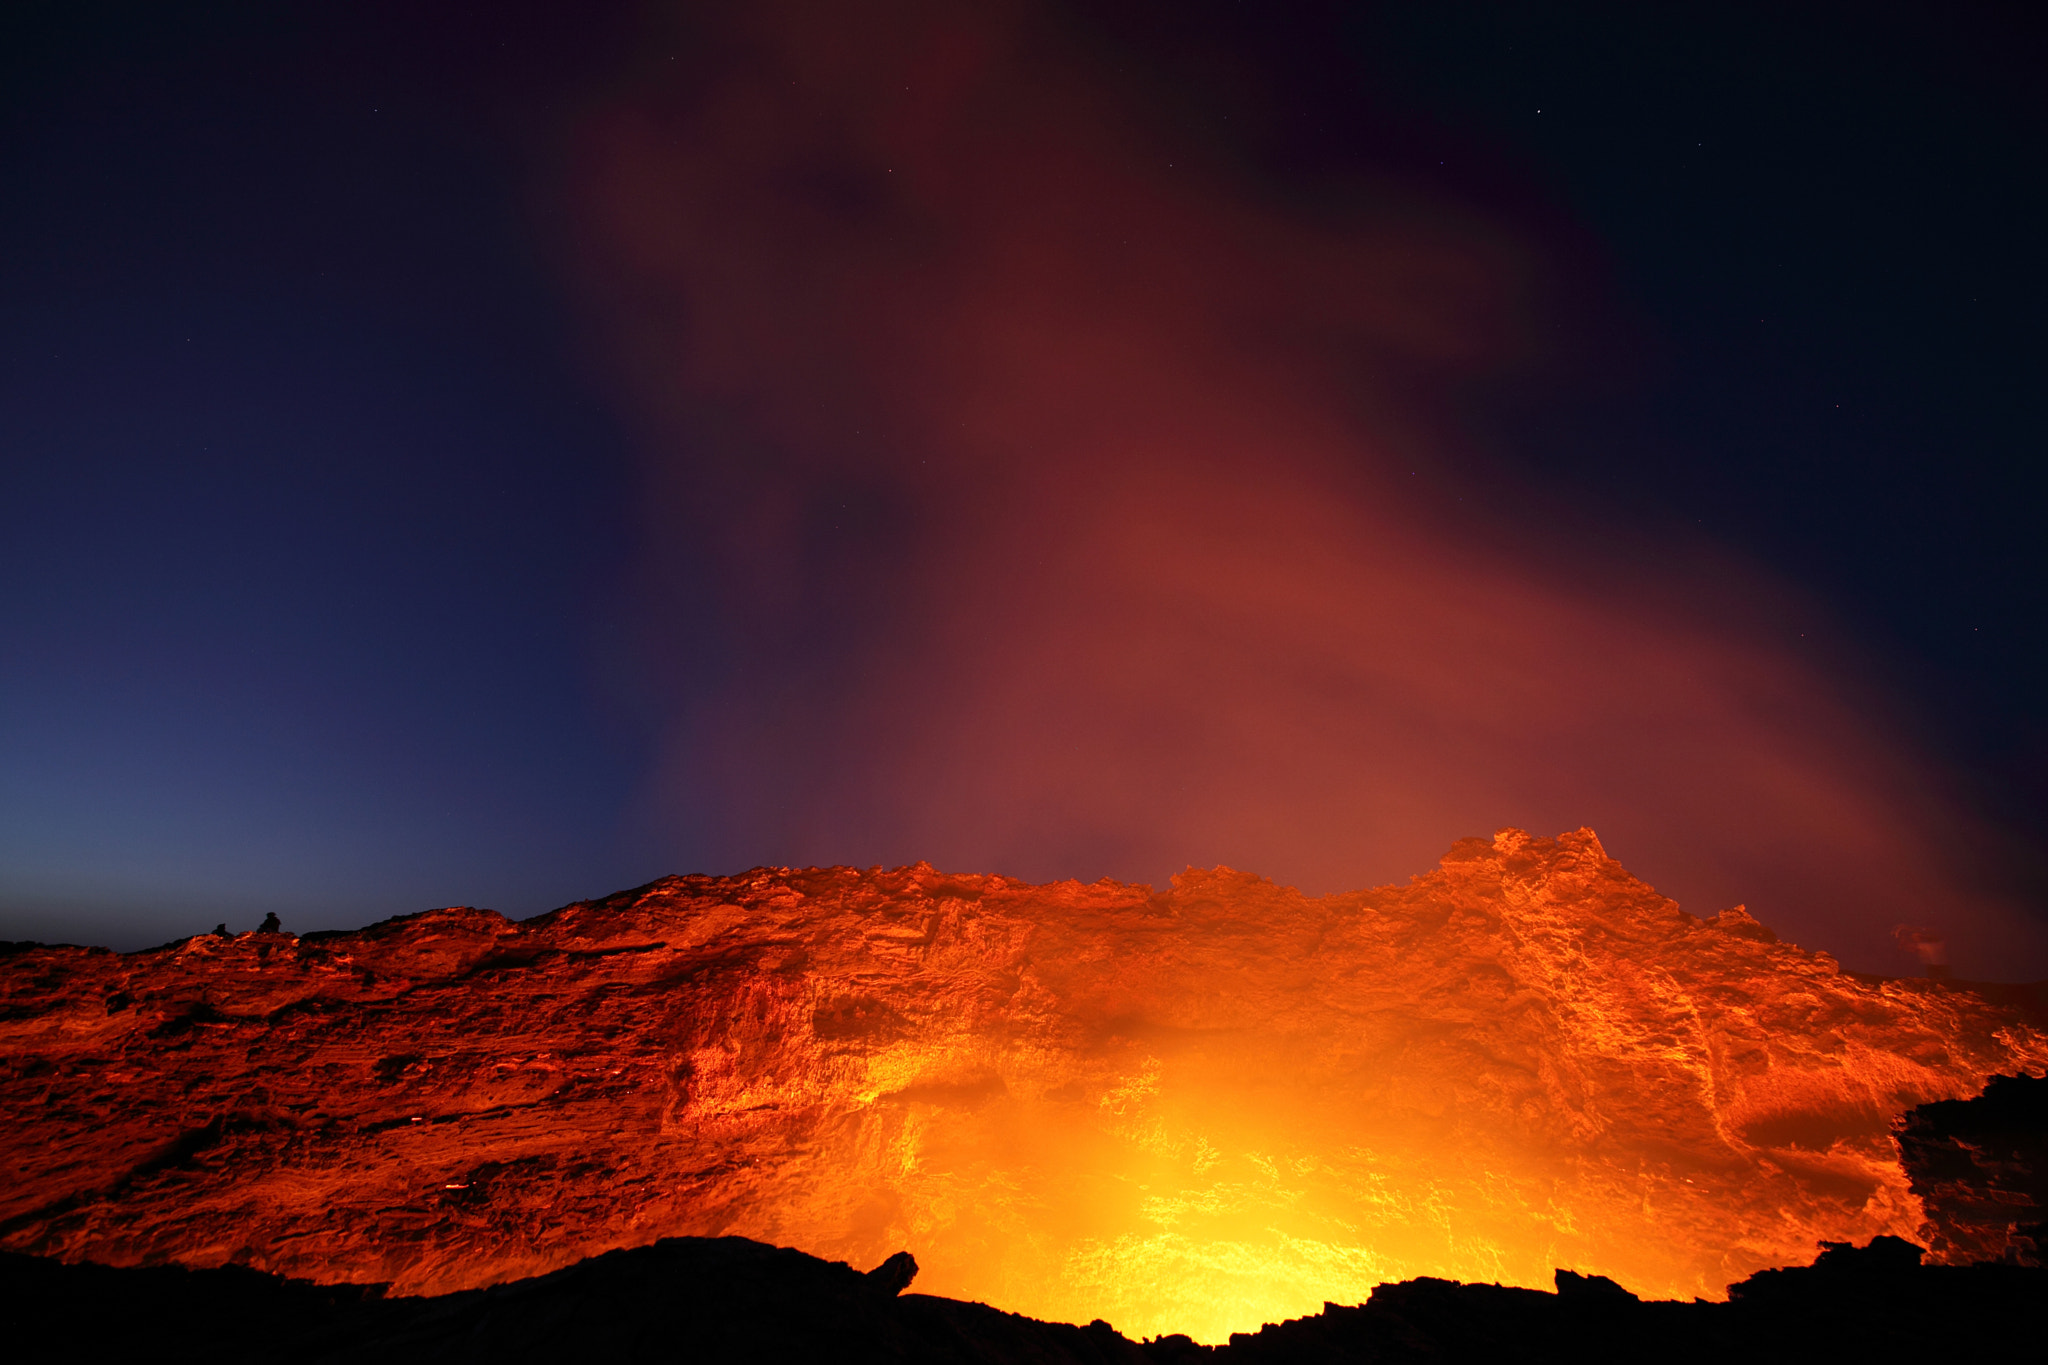 Photograph Glowing Lava Lake of Erta Ale Volcano just after Sunset by Richard Roscoe on 500px